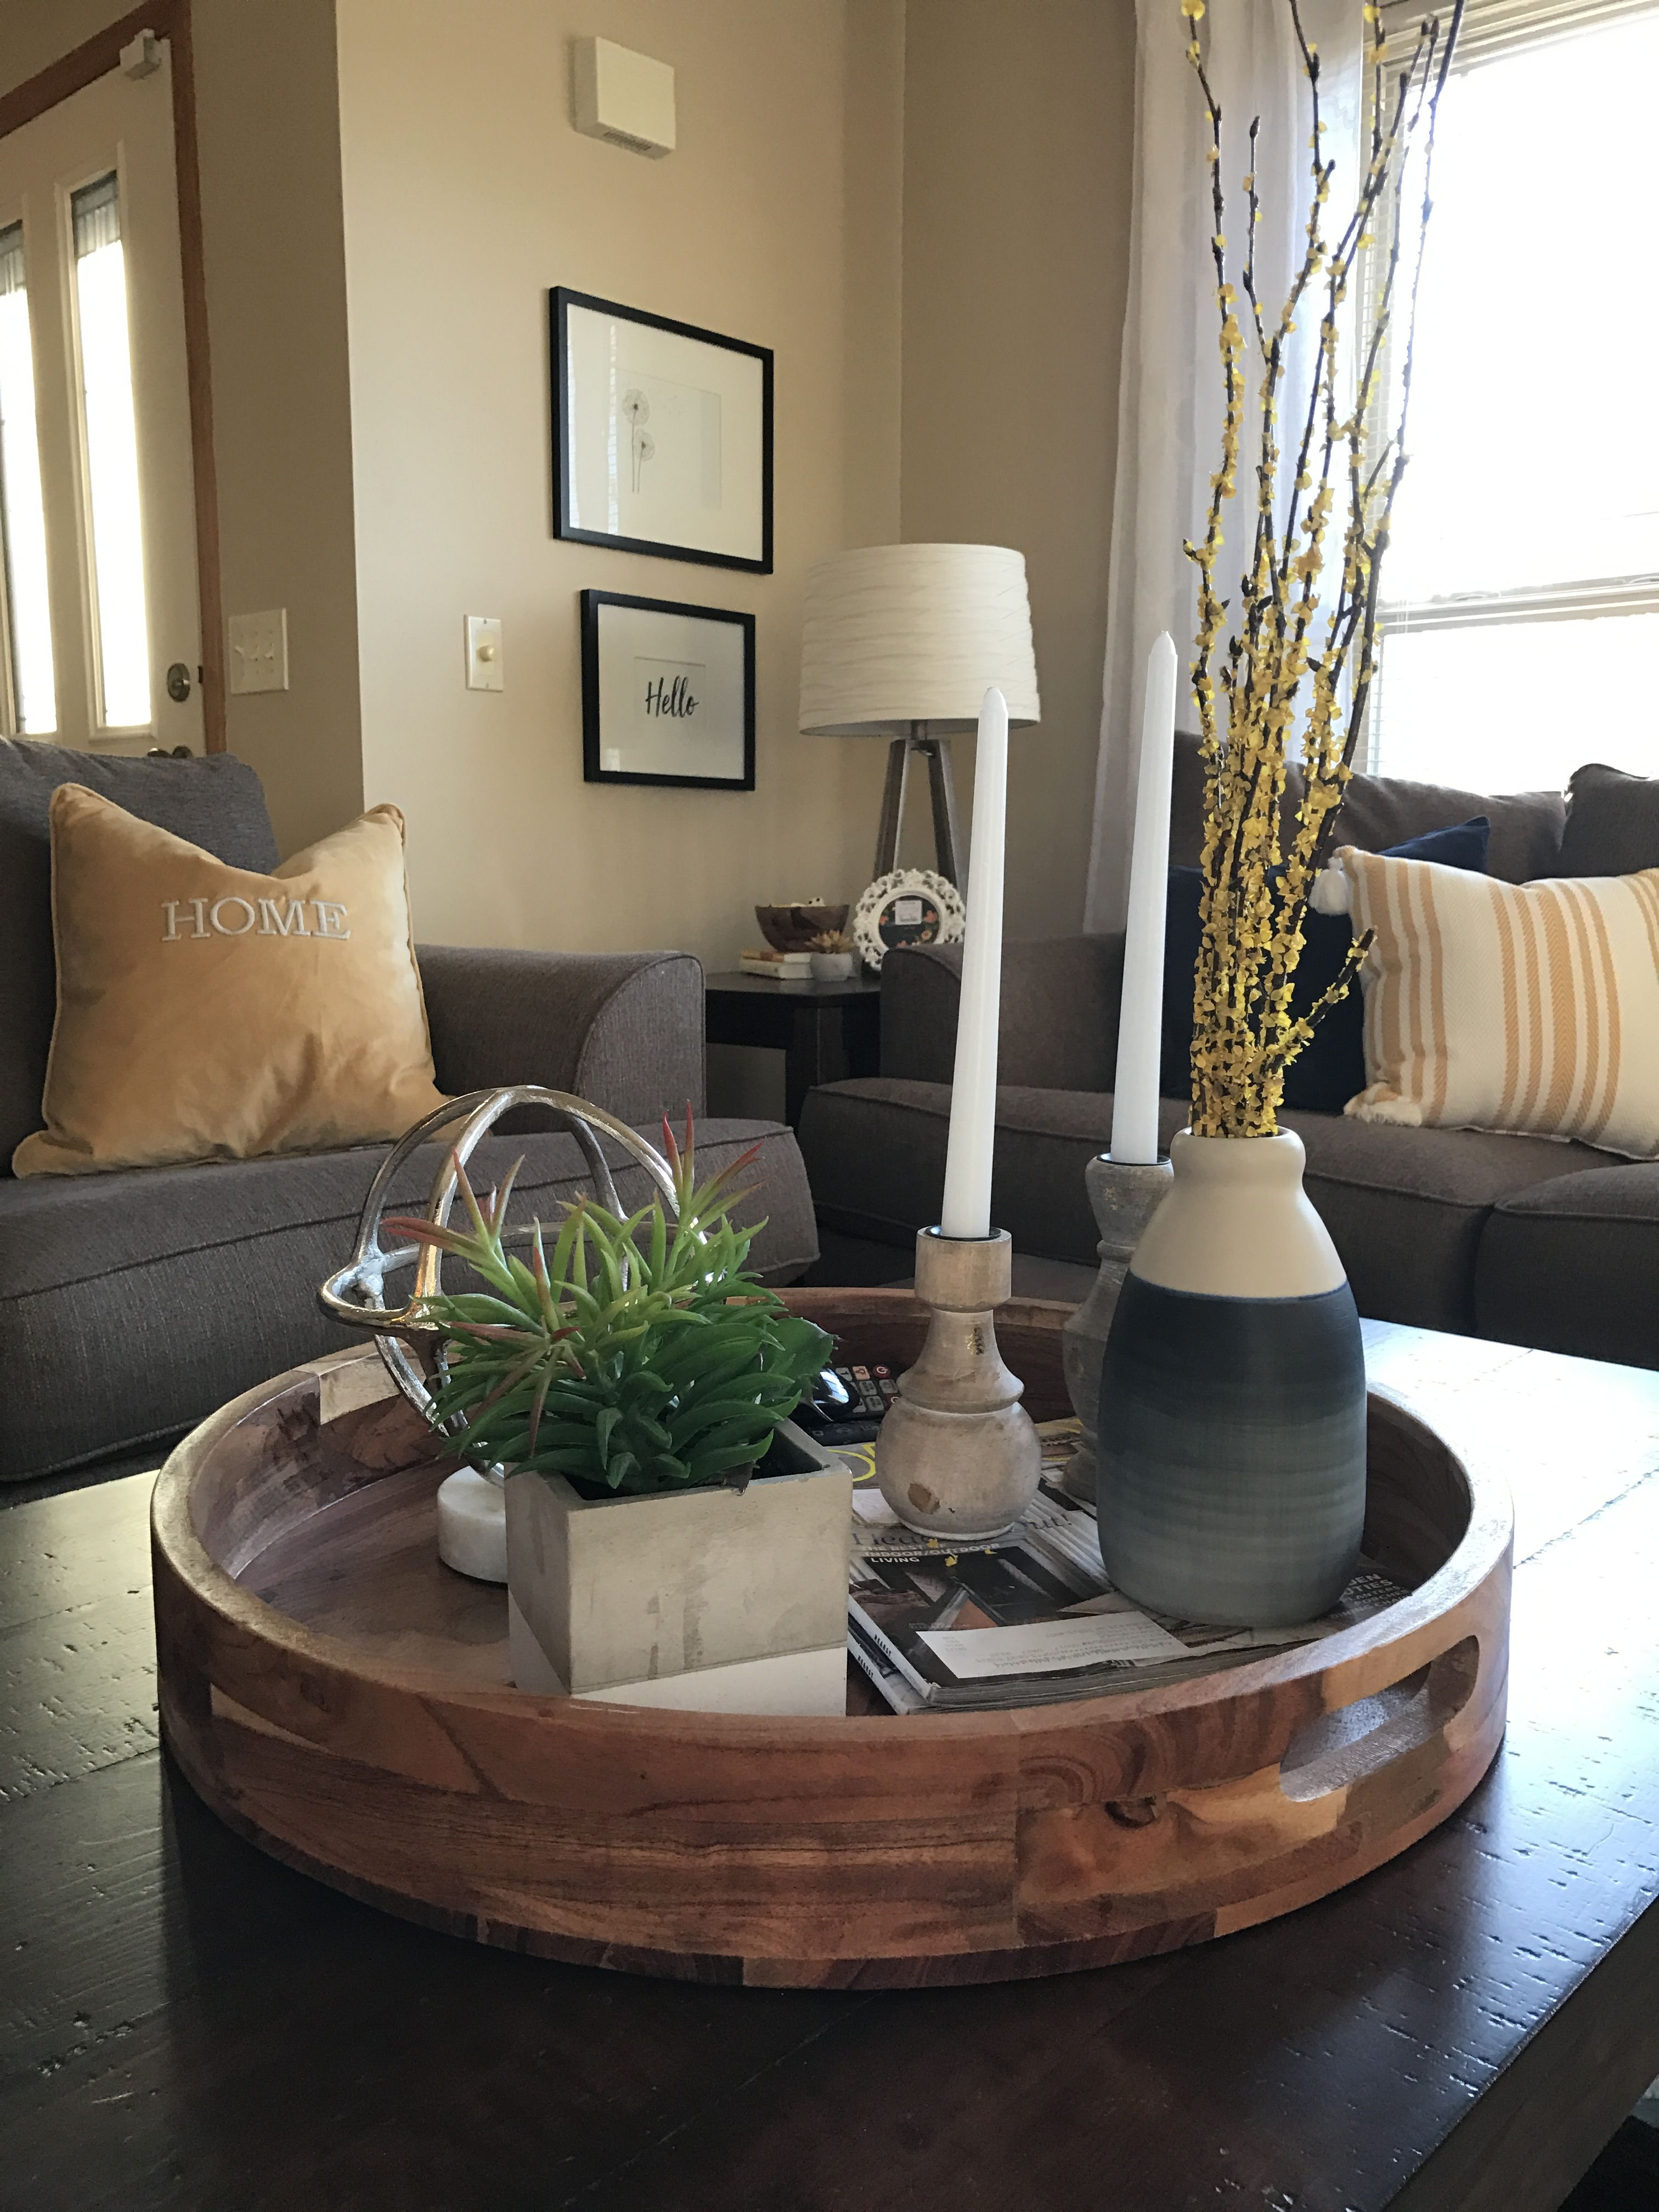 Pin By Amazing Space By Mk On Amazing Space By Mk Center Table Decor Rustic Style Decor Room Arrangement Ideas